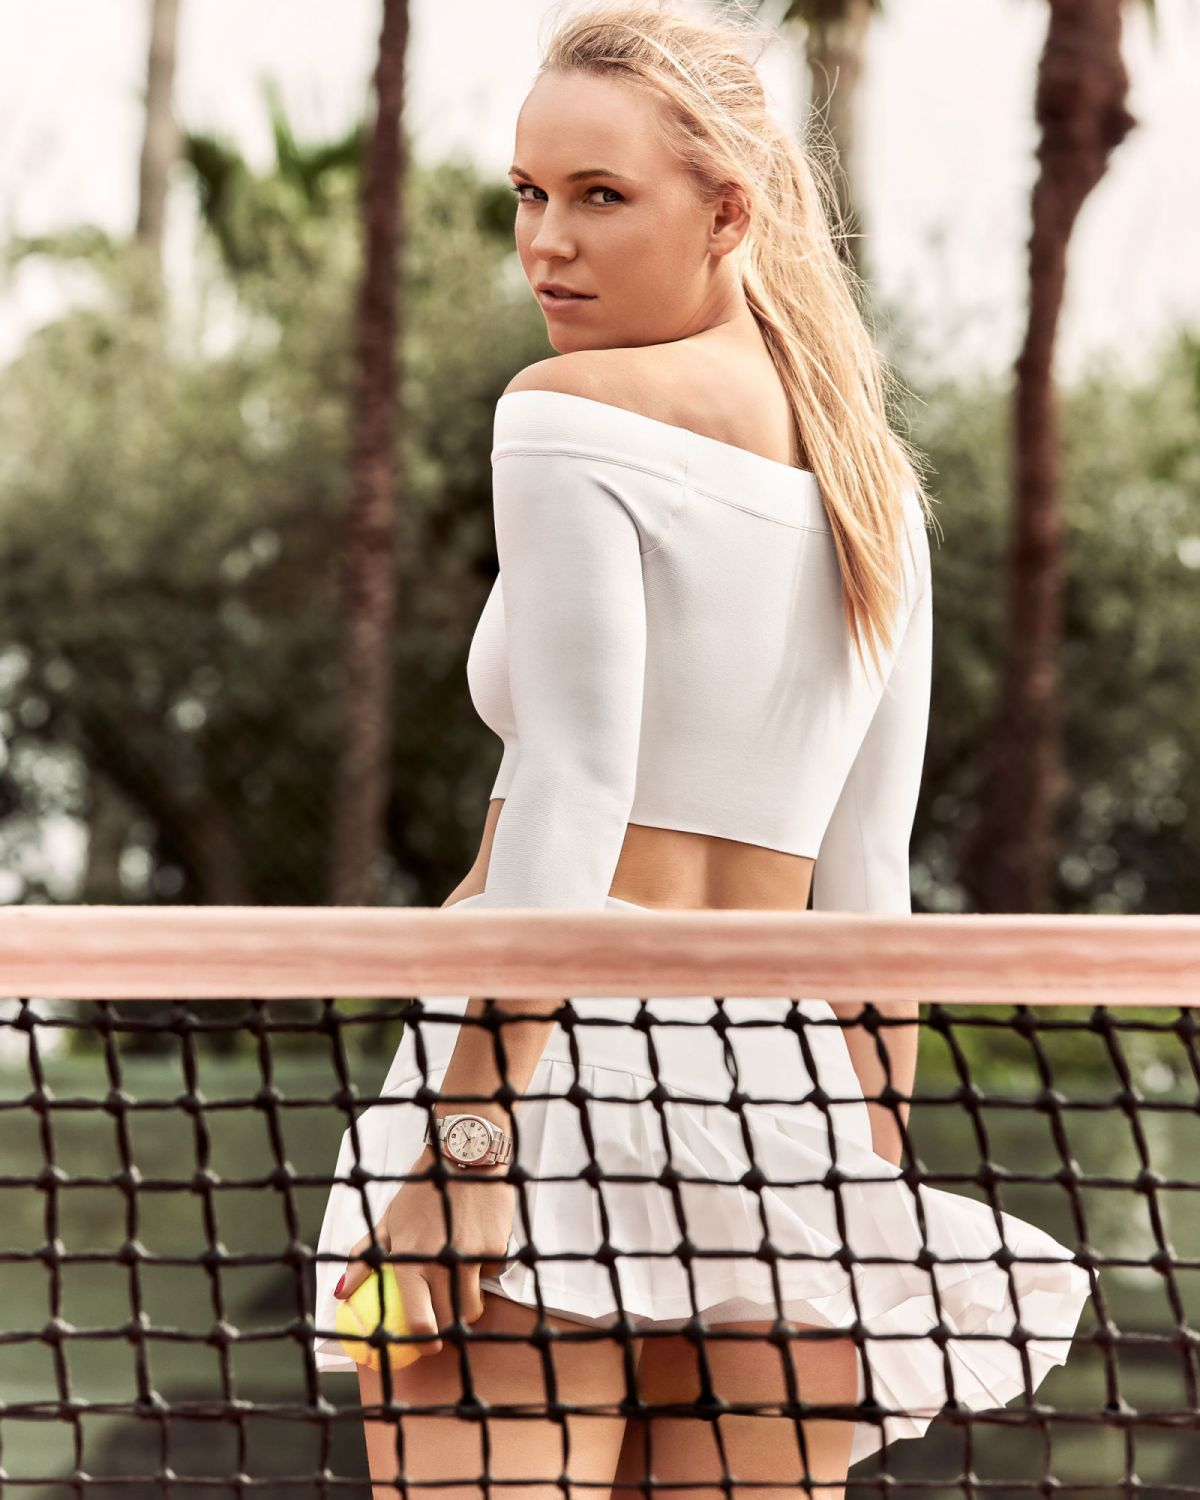 CAROLINE WOZNIACKI in Esquire Magazine, June/July 2016 Issue